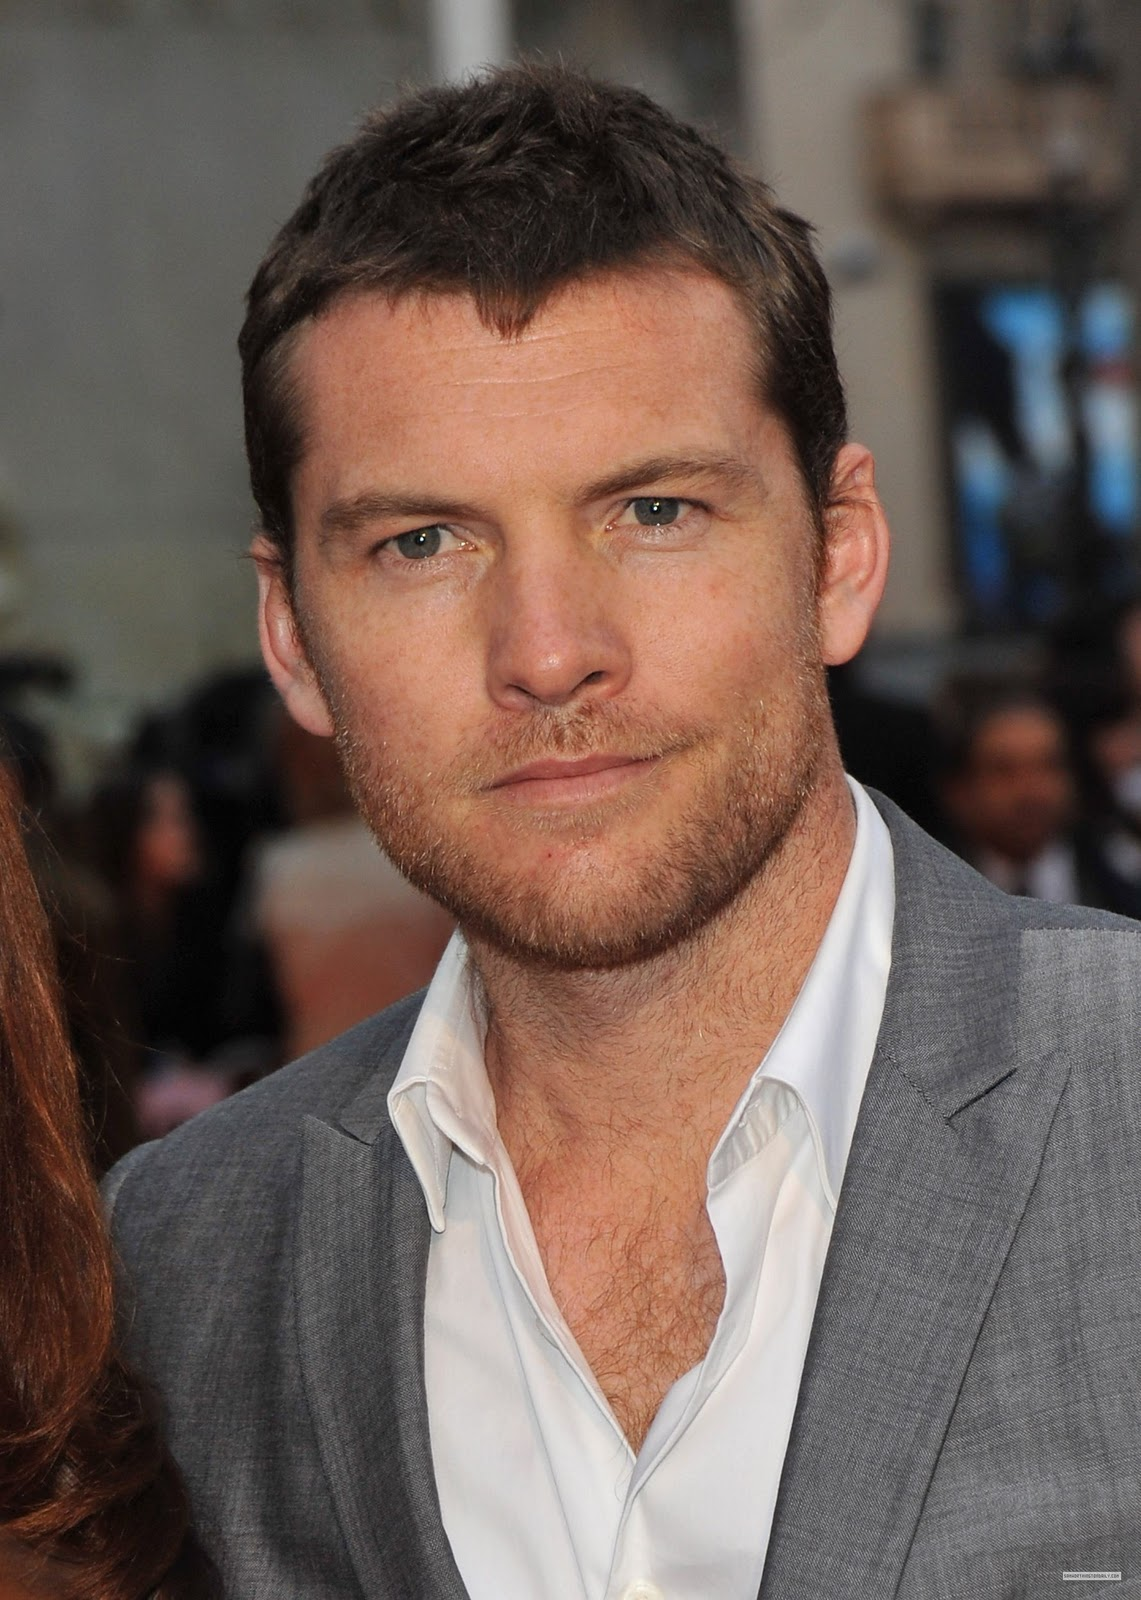 http://4.bp.blogspot.com/_QhQHrMXYV40/TL8uDtGlZ5I/AAAAAAAAADA/EJBohTDRIfc/s1600/Sam-at-Clash-of-The-Titans-London-Premiere-03-29-10-sam-worthington-11167781-1783-2500.jpg